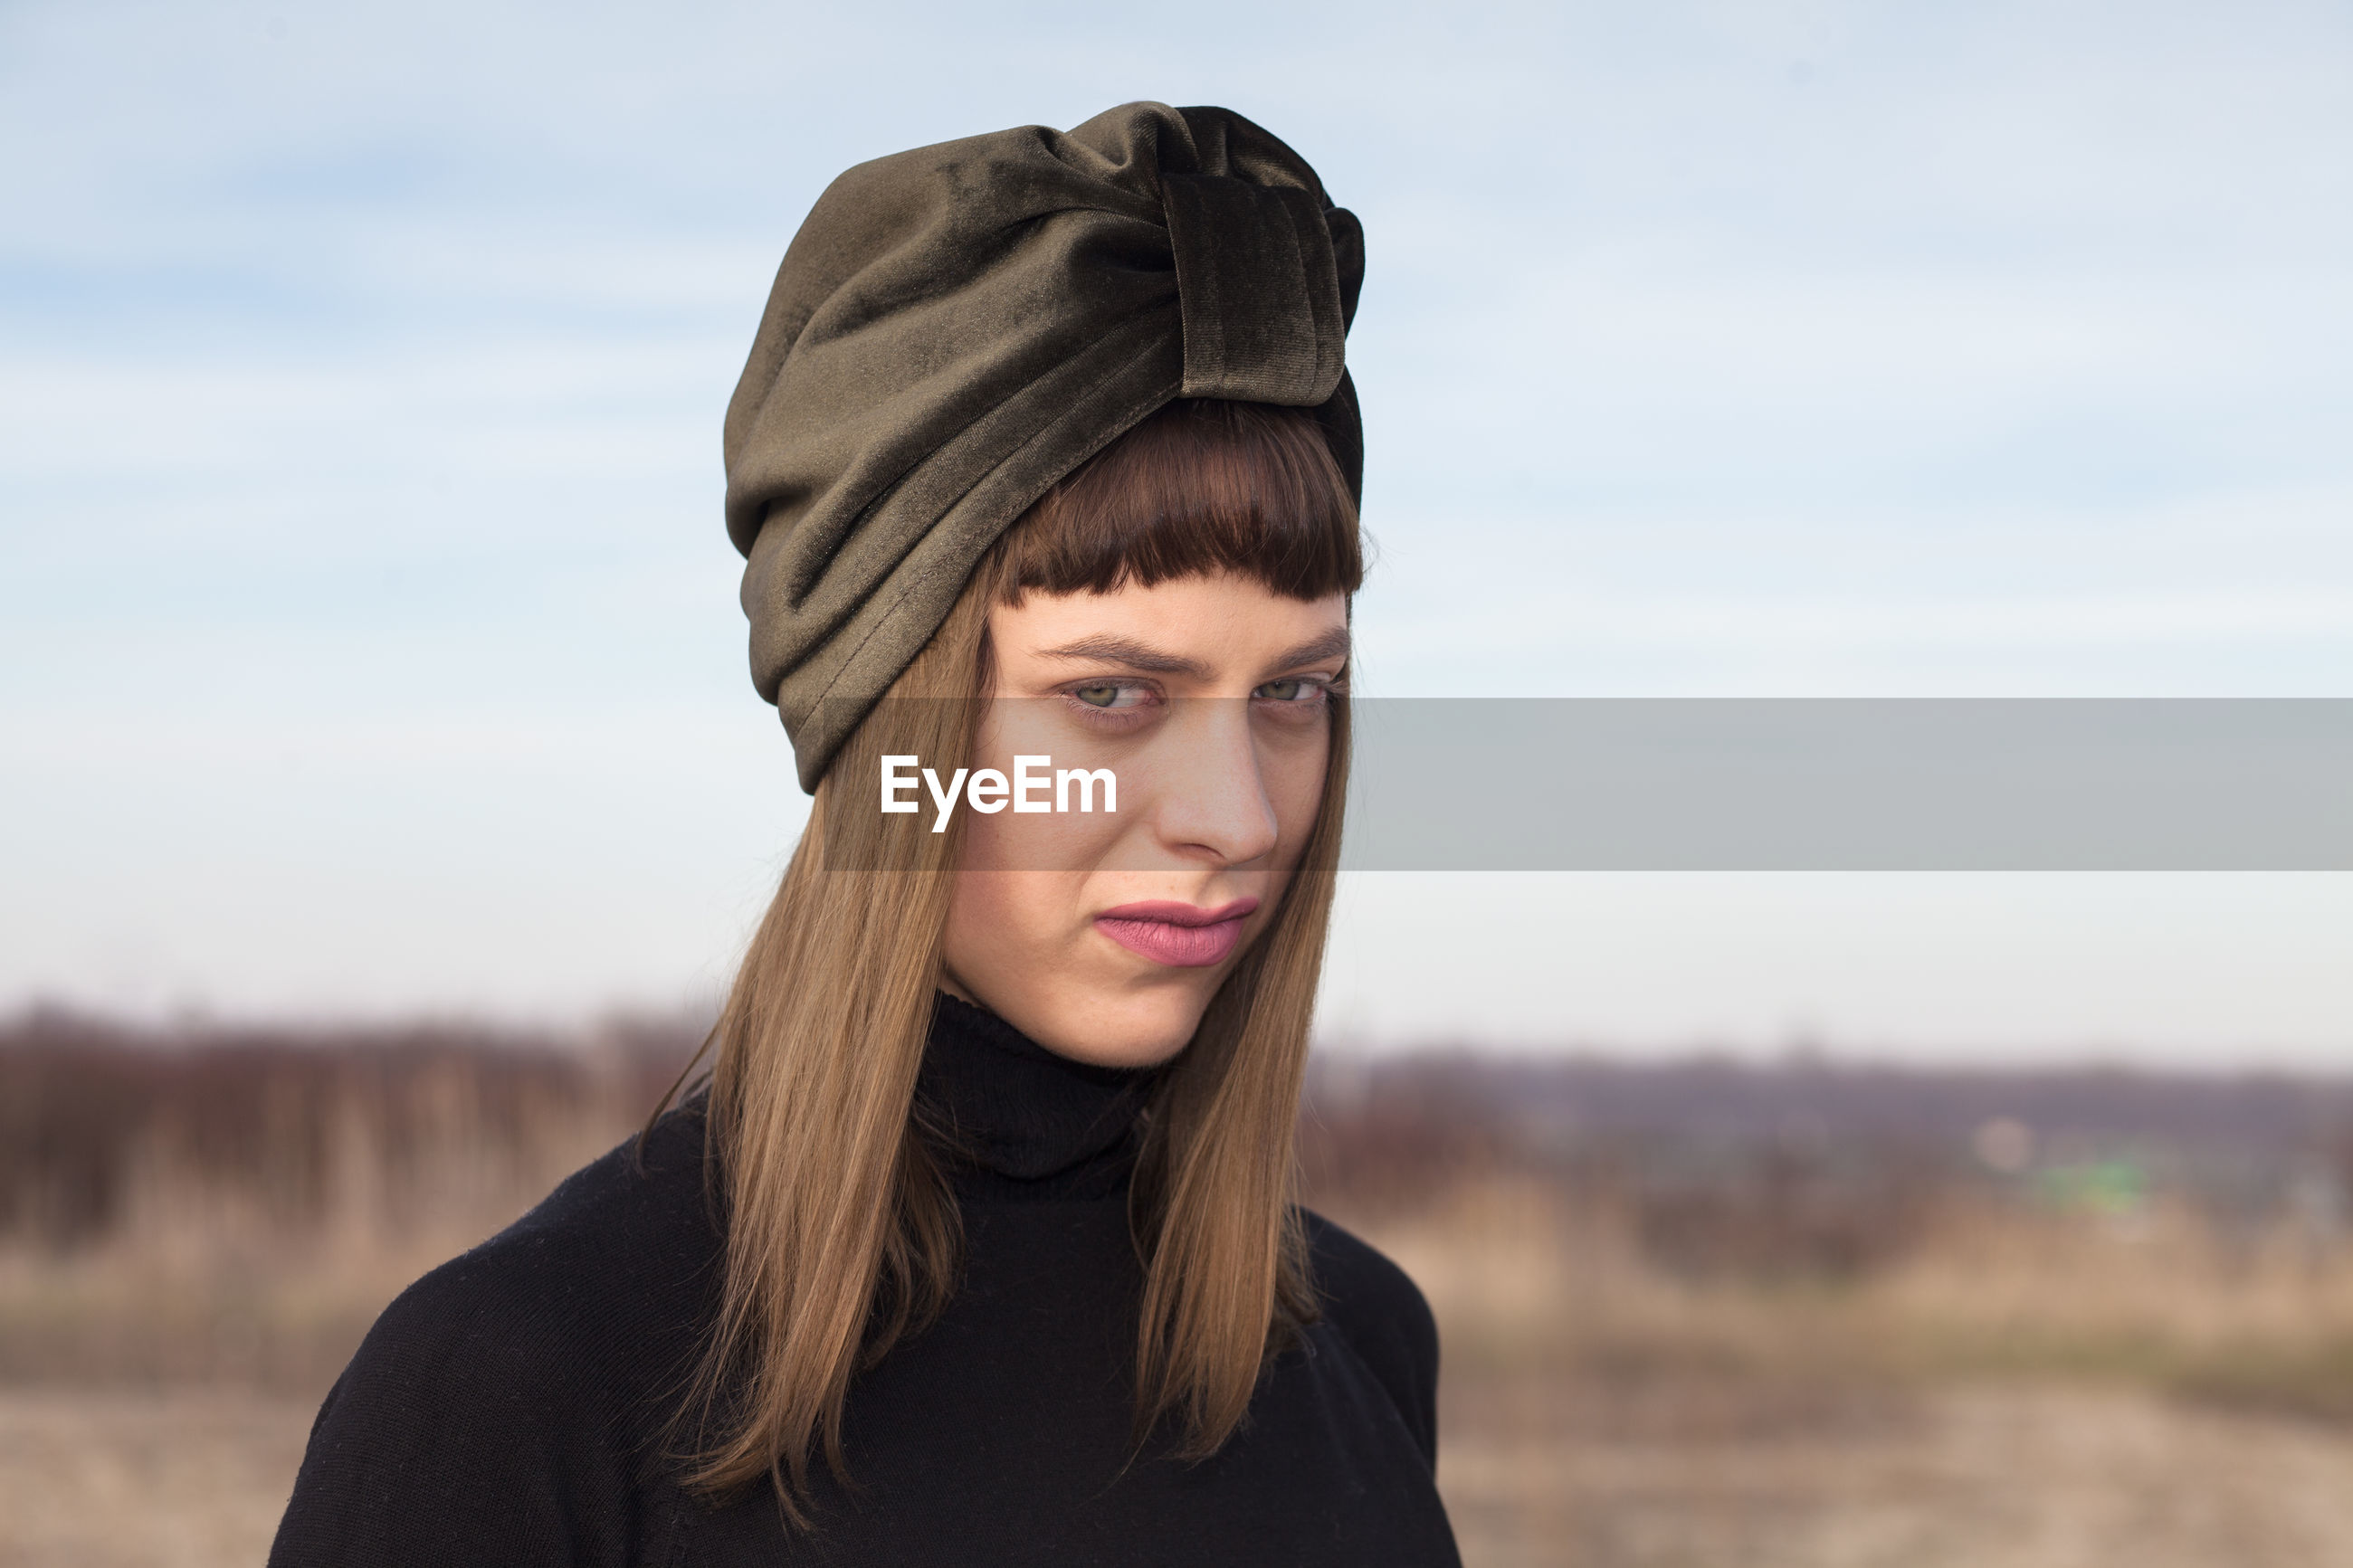 Portrait of young woman wearing headscarf against sky